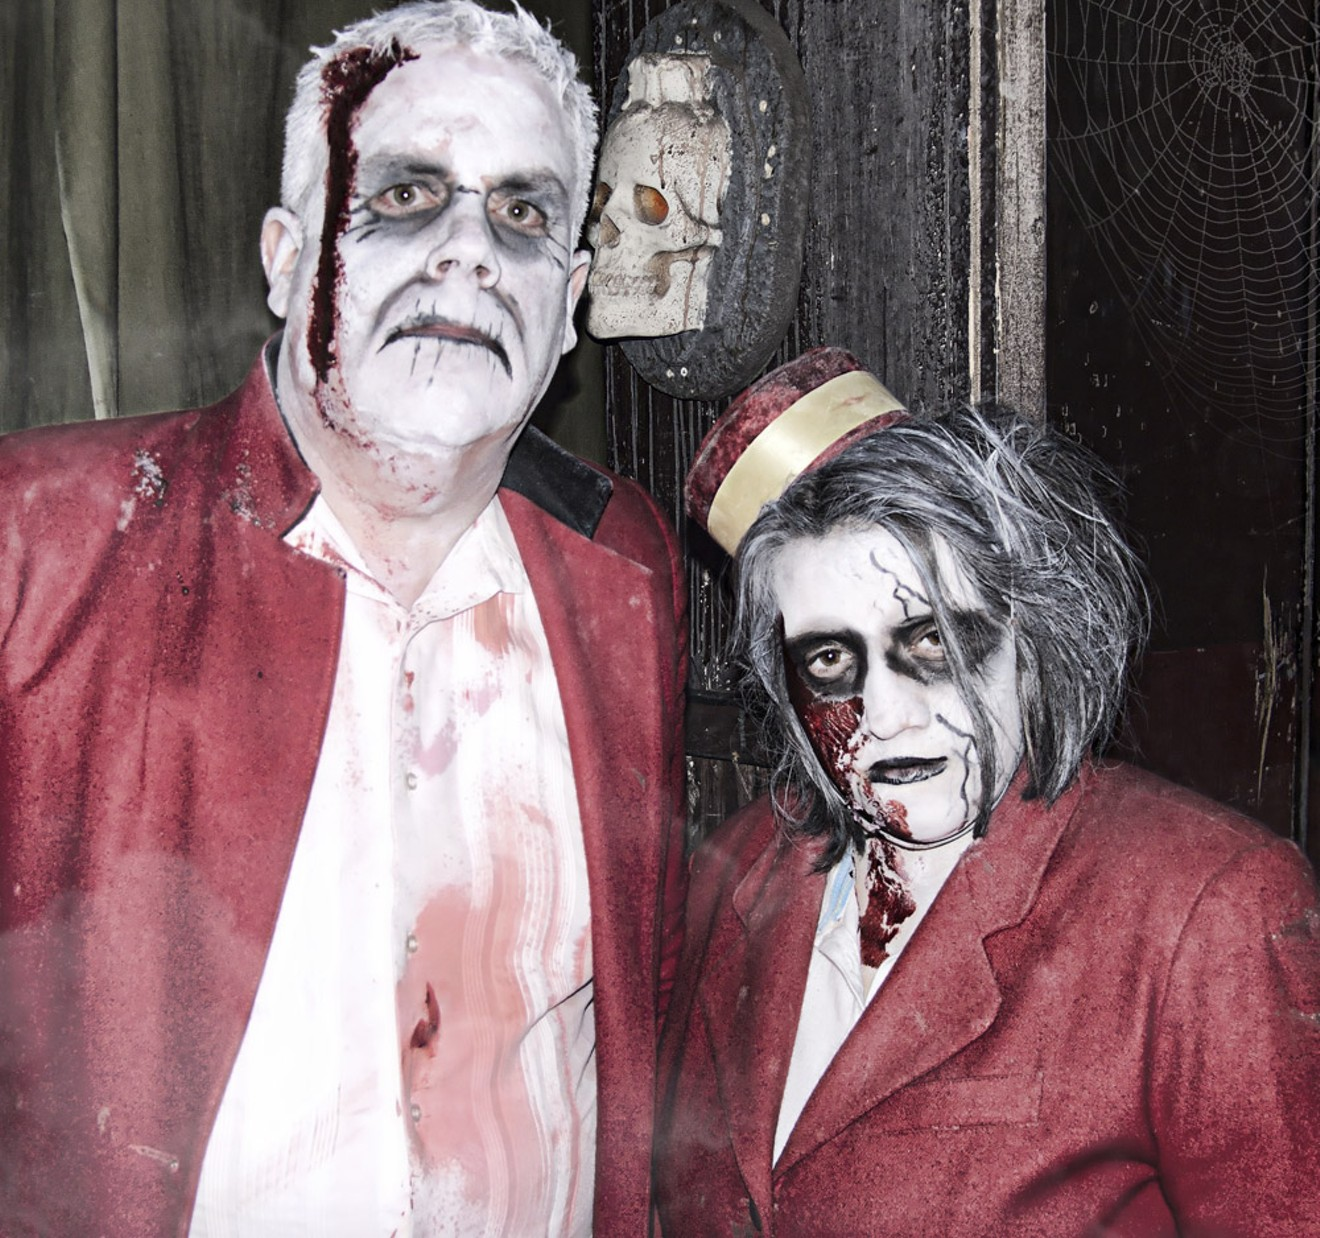 Sharply dressed zombies will make an appearance.